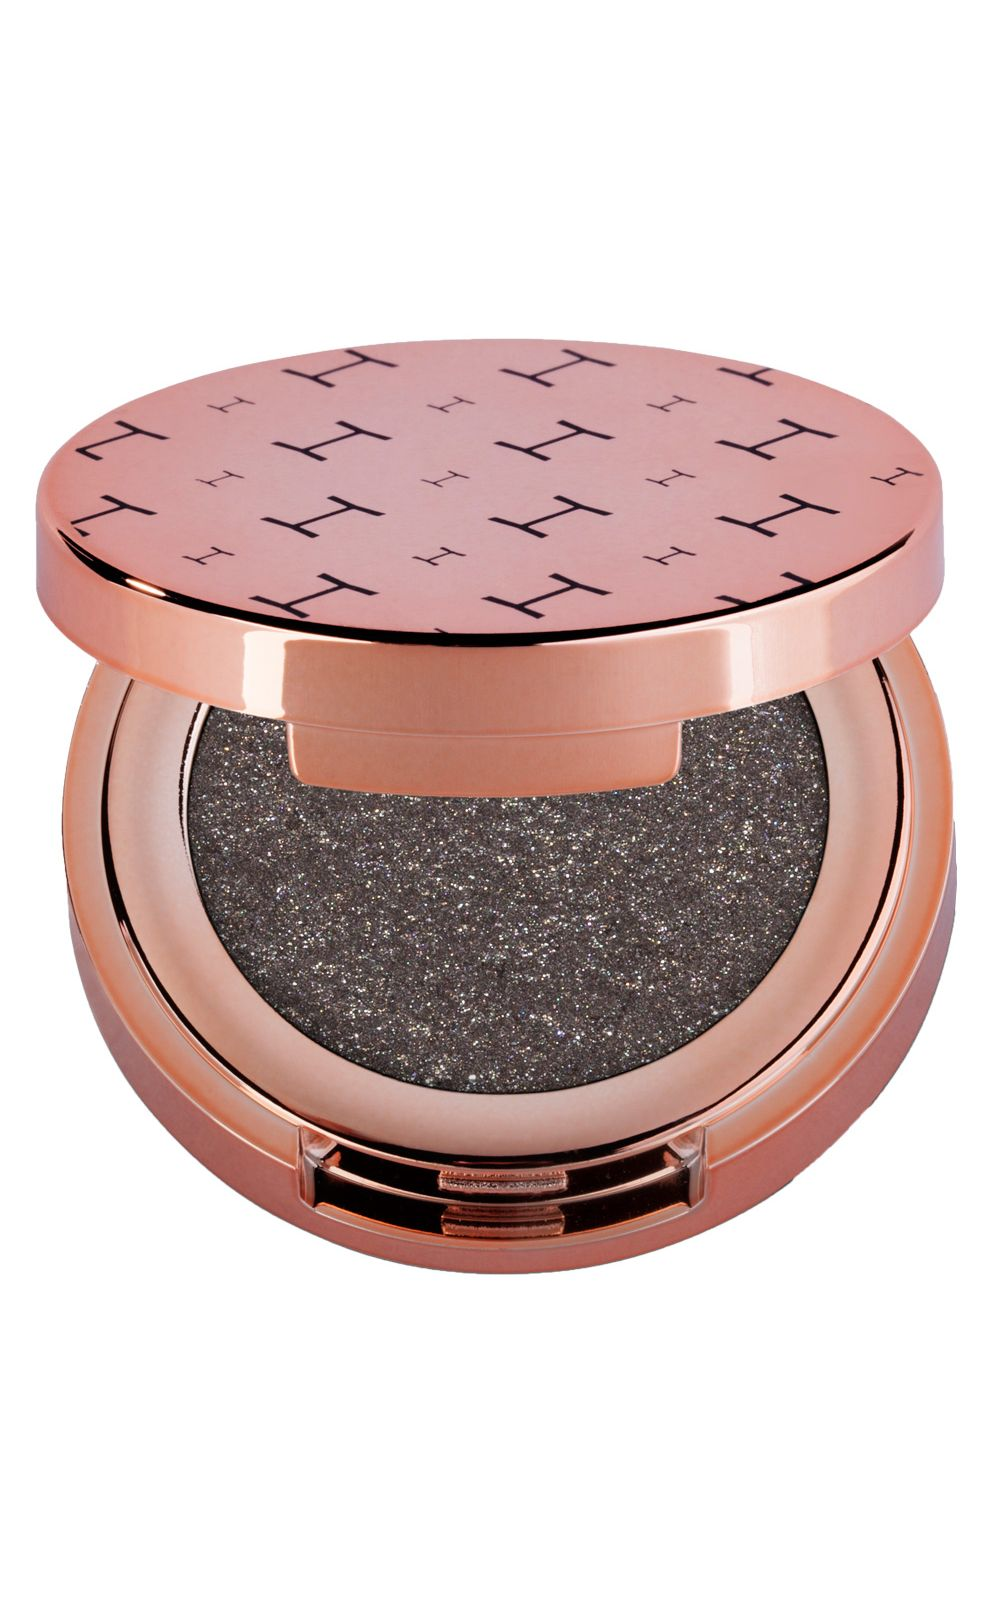 Foto 1 - Hot Candy Hot Makeup - Sombra - HC30 - Toasted Almond